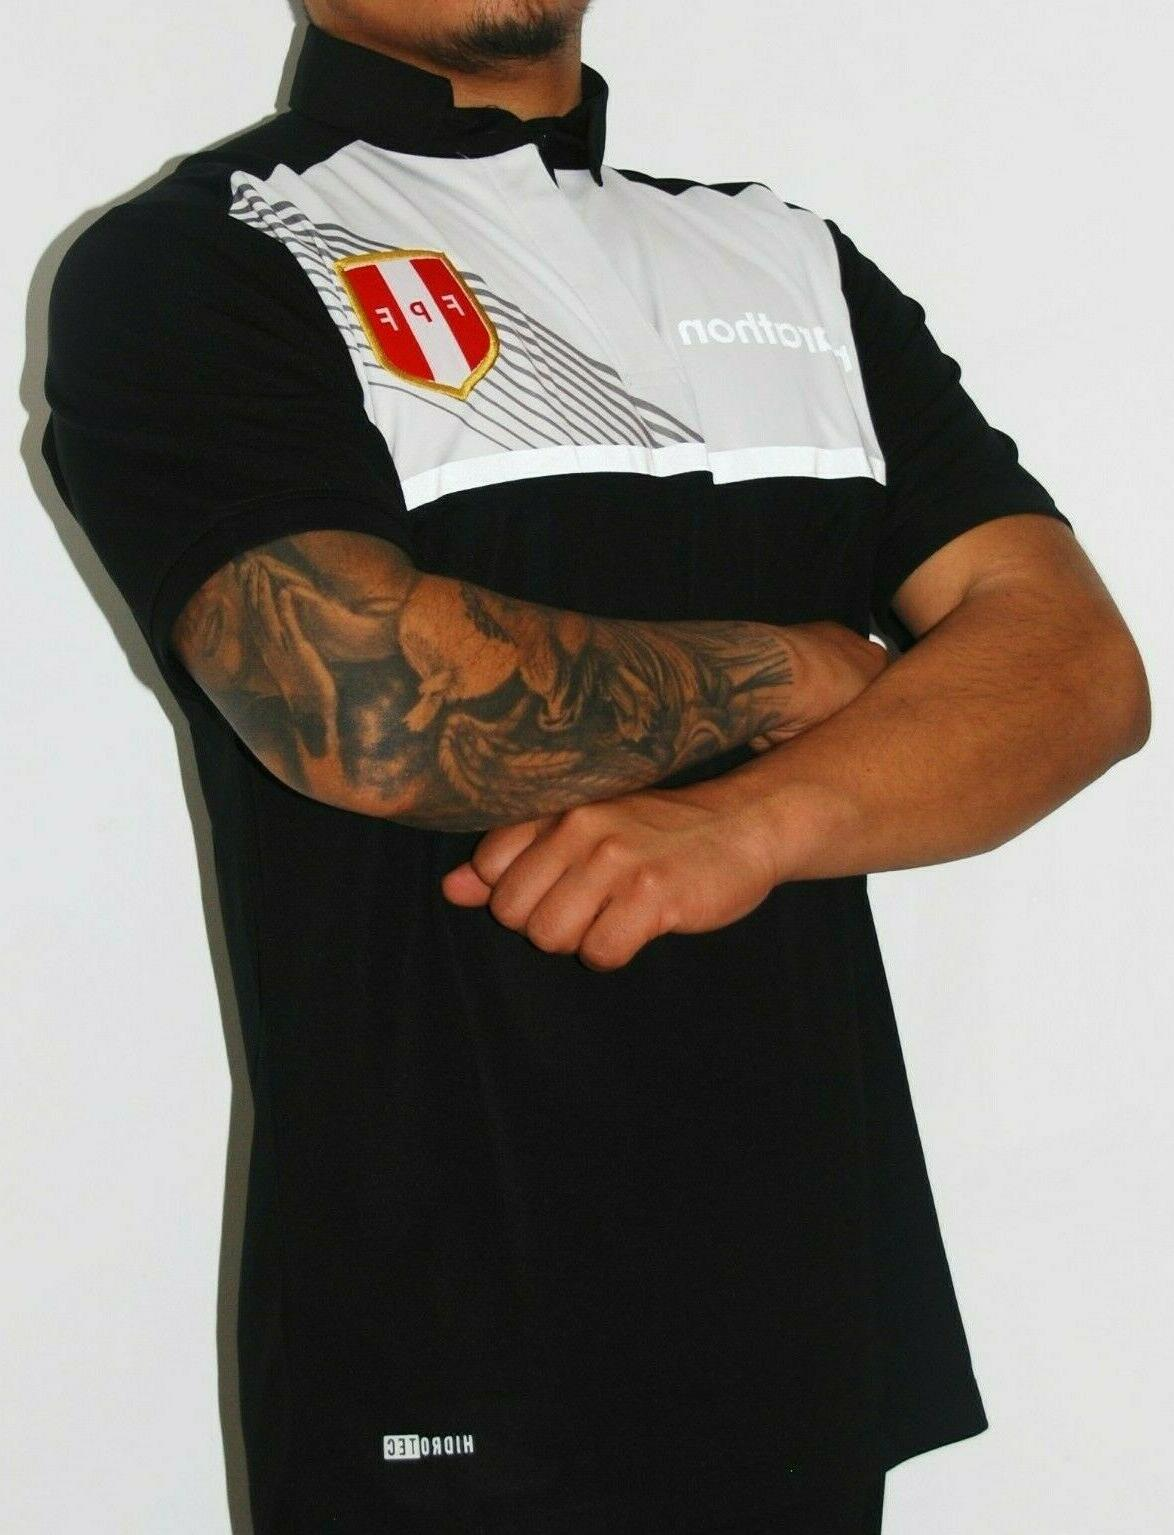 national team training soccer jersey size s